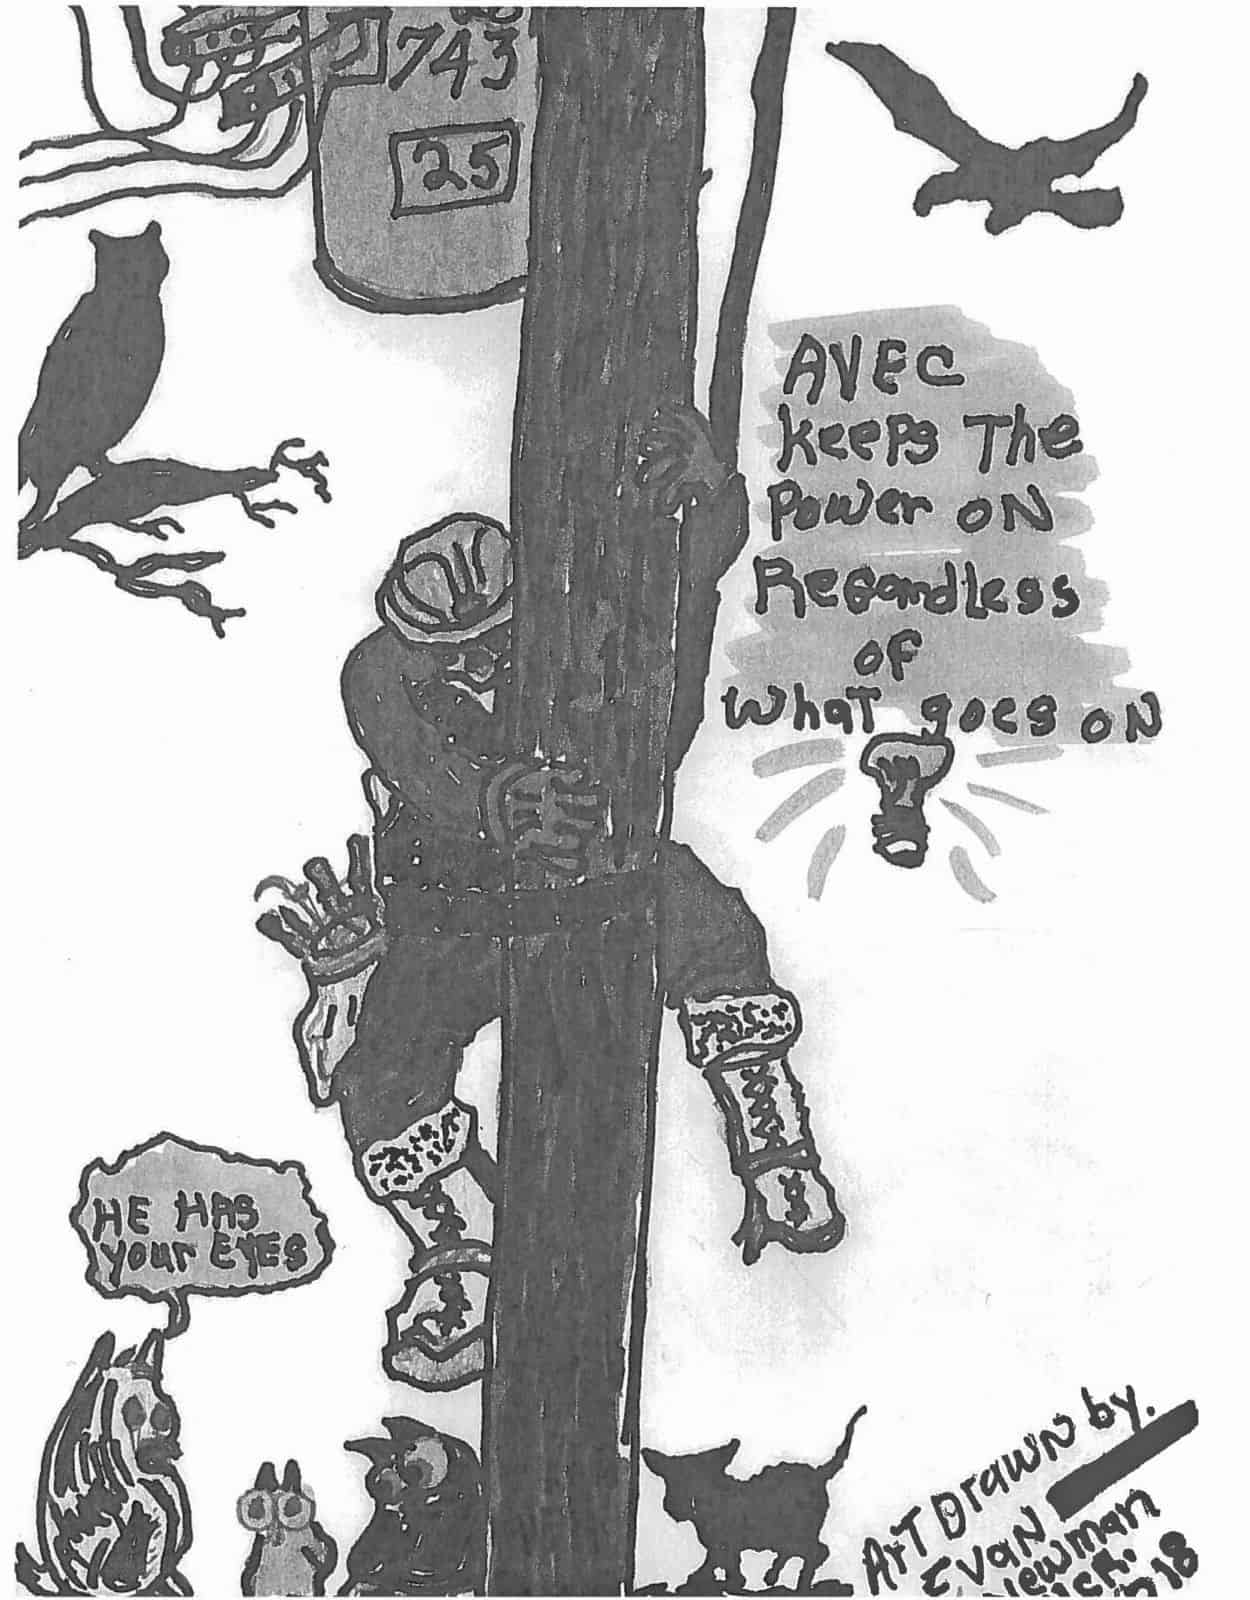 Worker climbs utility pole while various wildlife looks on. Text: AVEC keeps the power on regardless of what goes on.